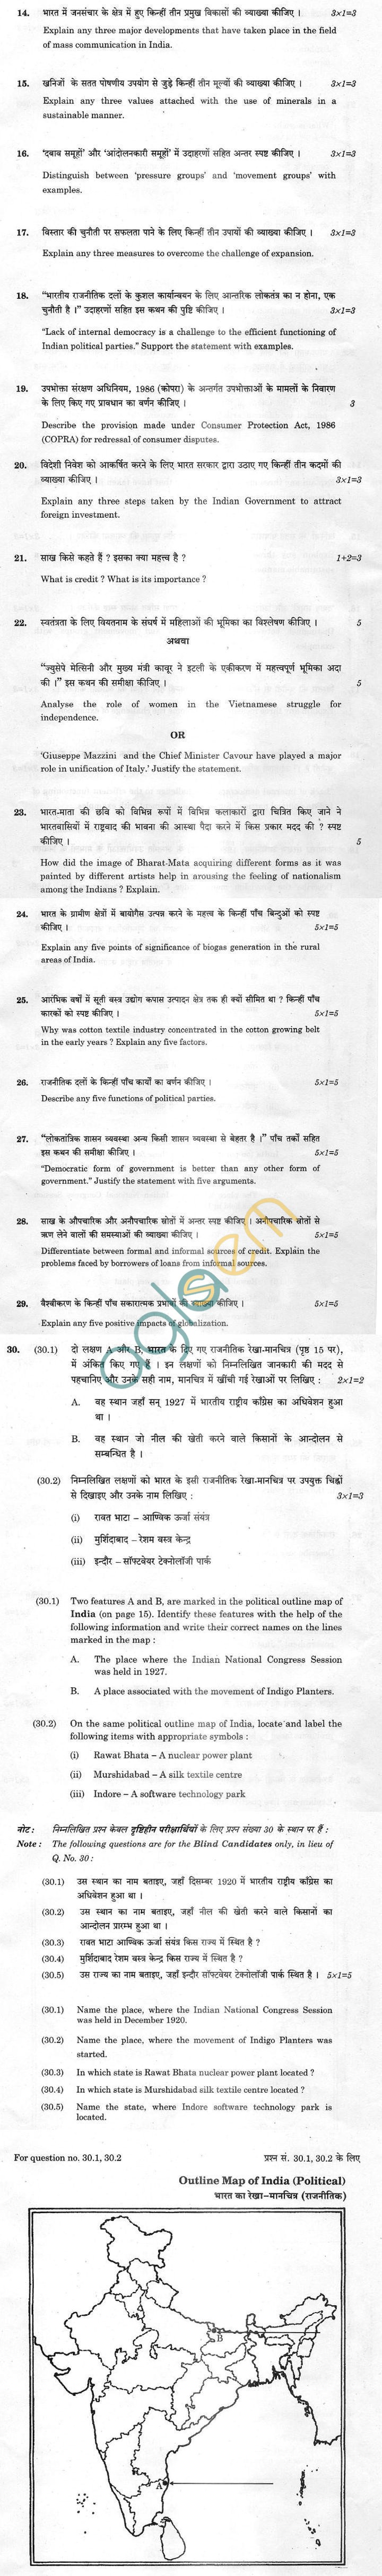 CBSE Compartment Exam 2013 Class X Question Paper - Social Science